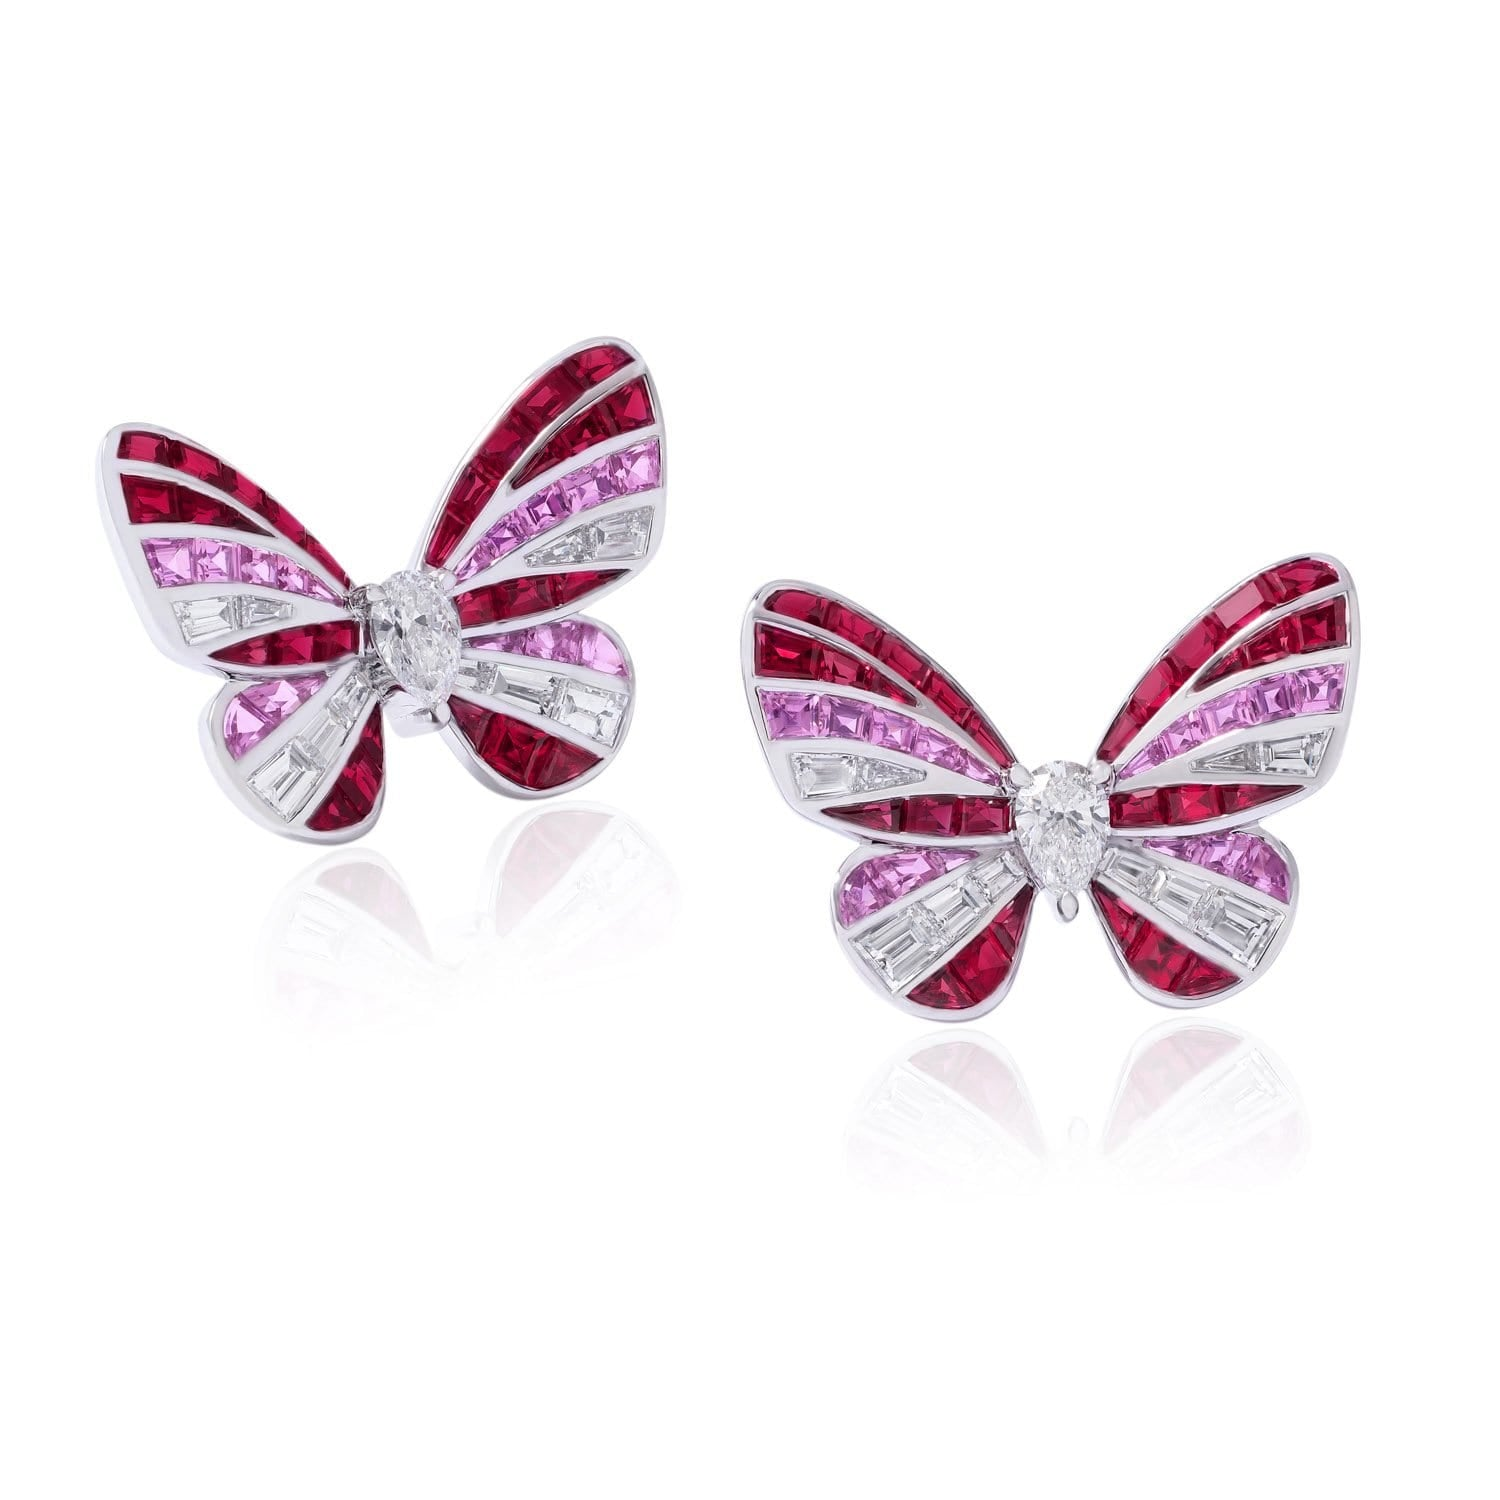 BUTTERFLY LOVERS EARRINGS - STENZHORN JEWELLERY